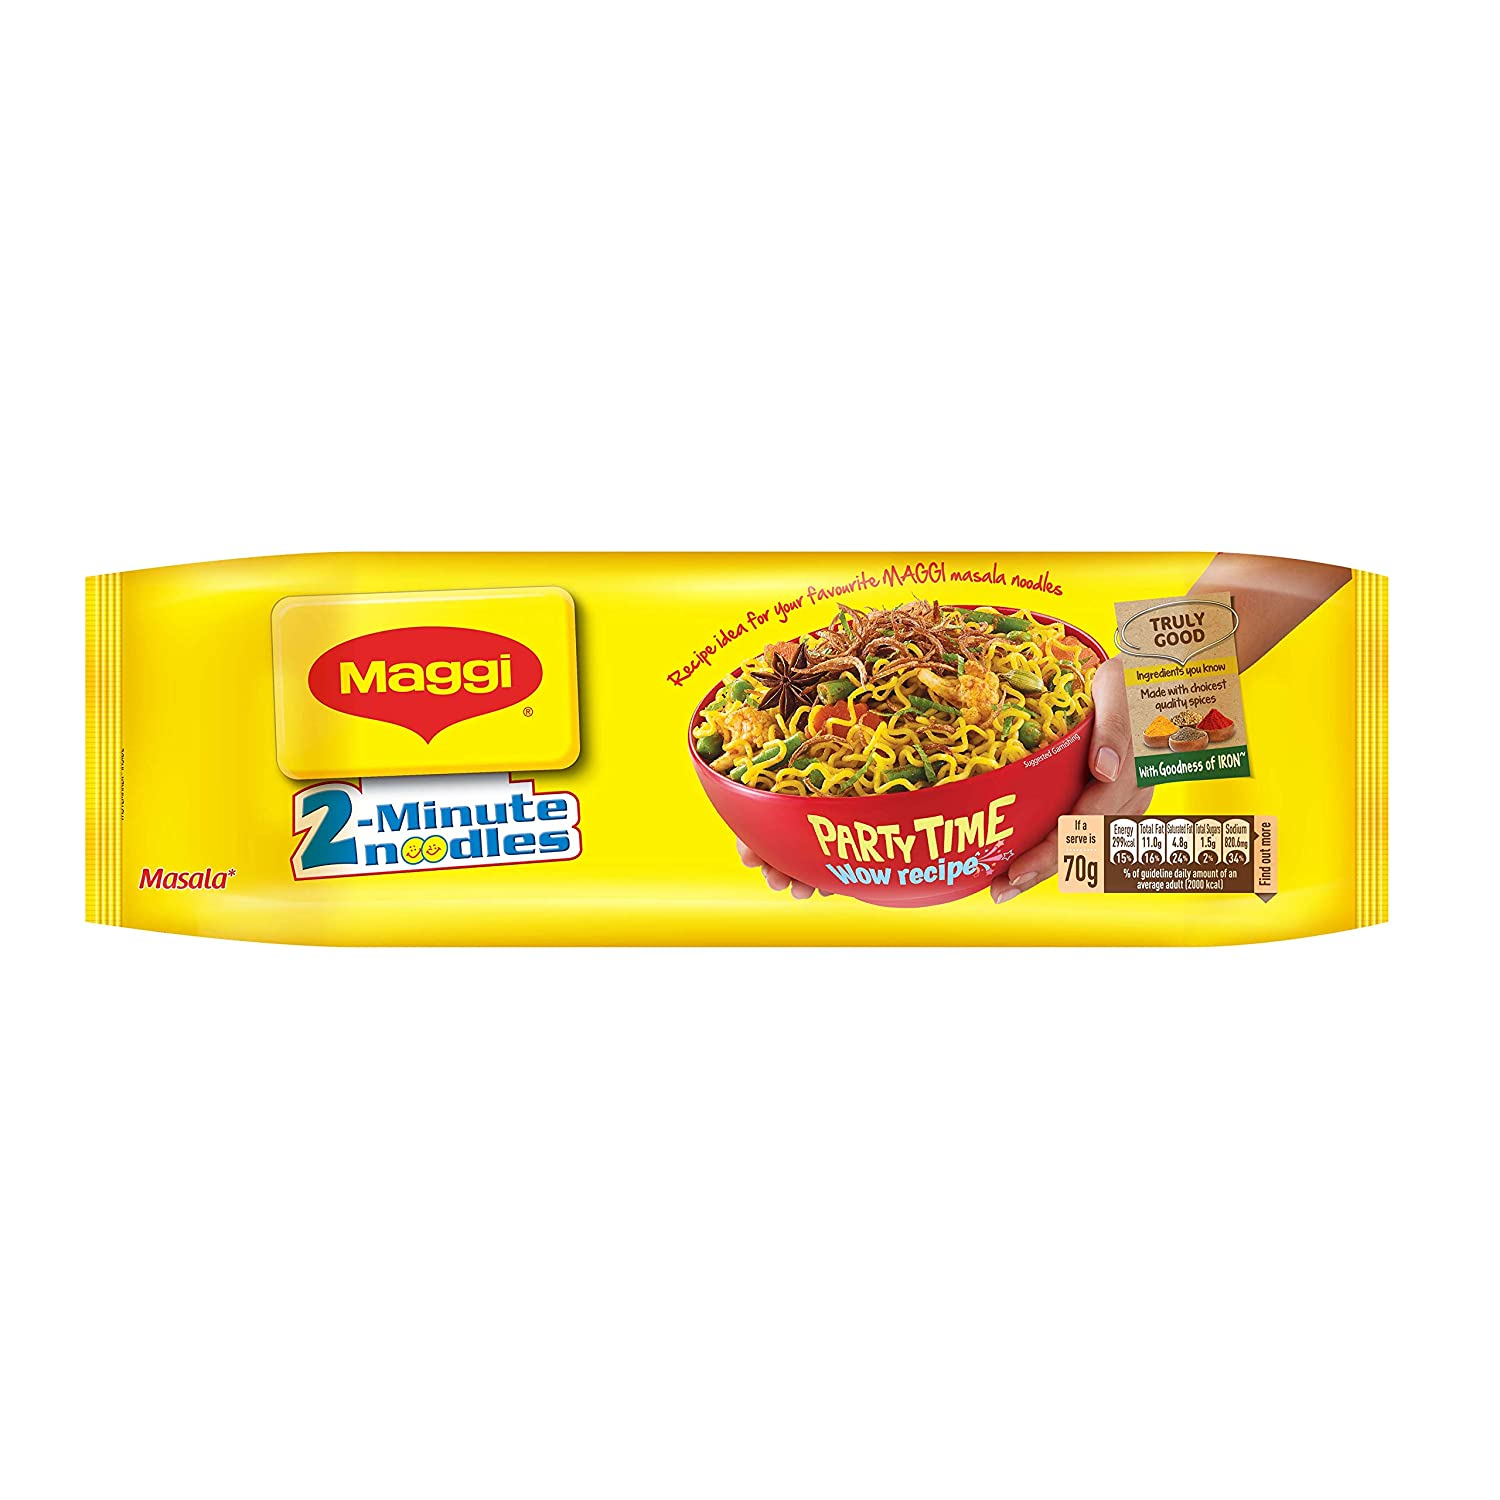 Maggi 560g 2-Minute Instant Noodles – Masala $1.05 Coupon